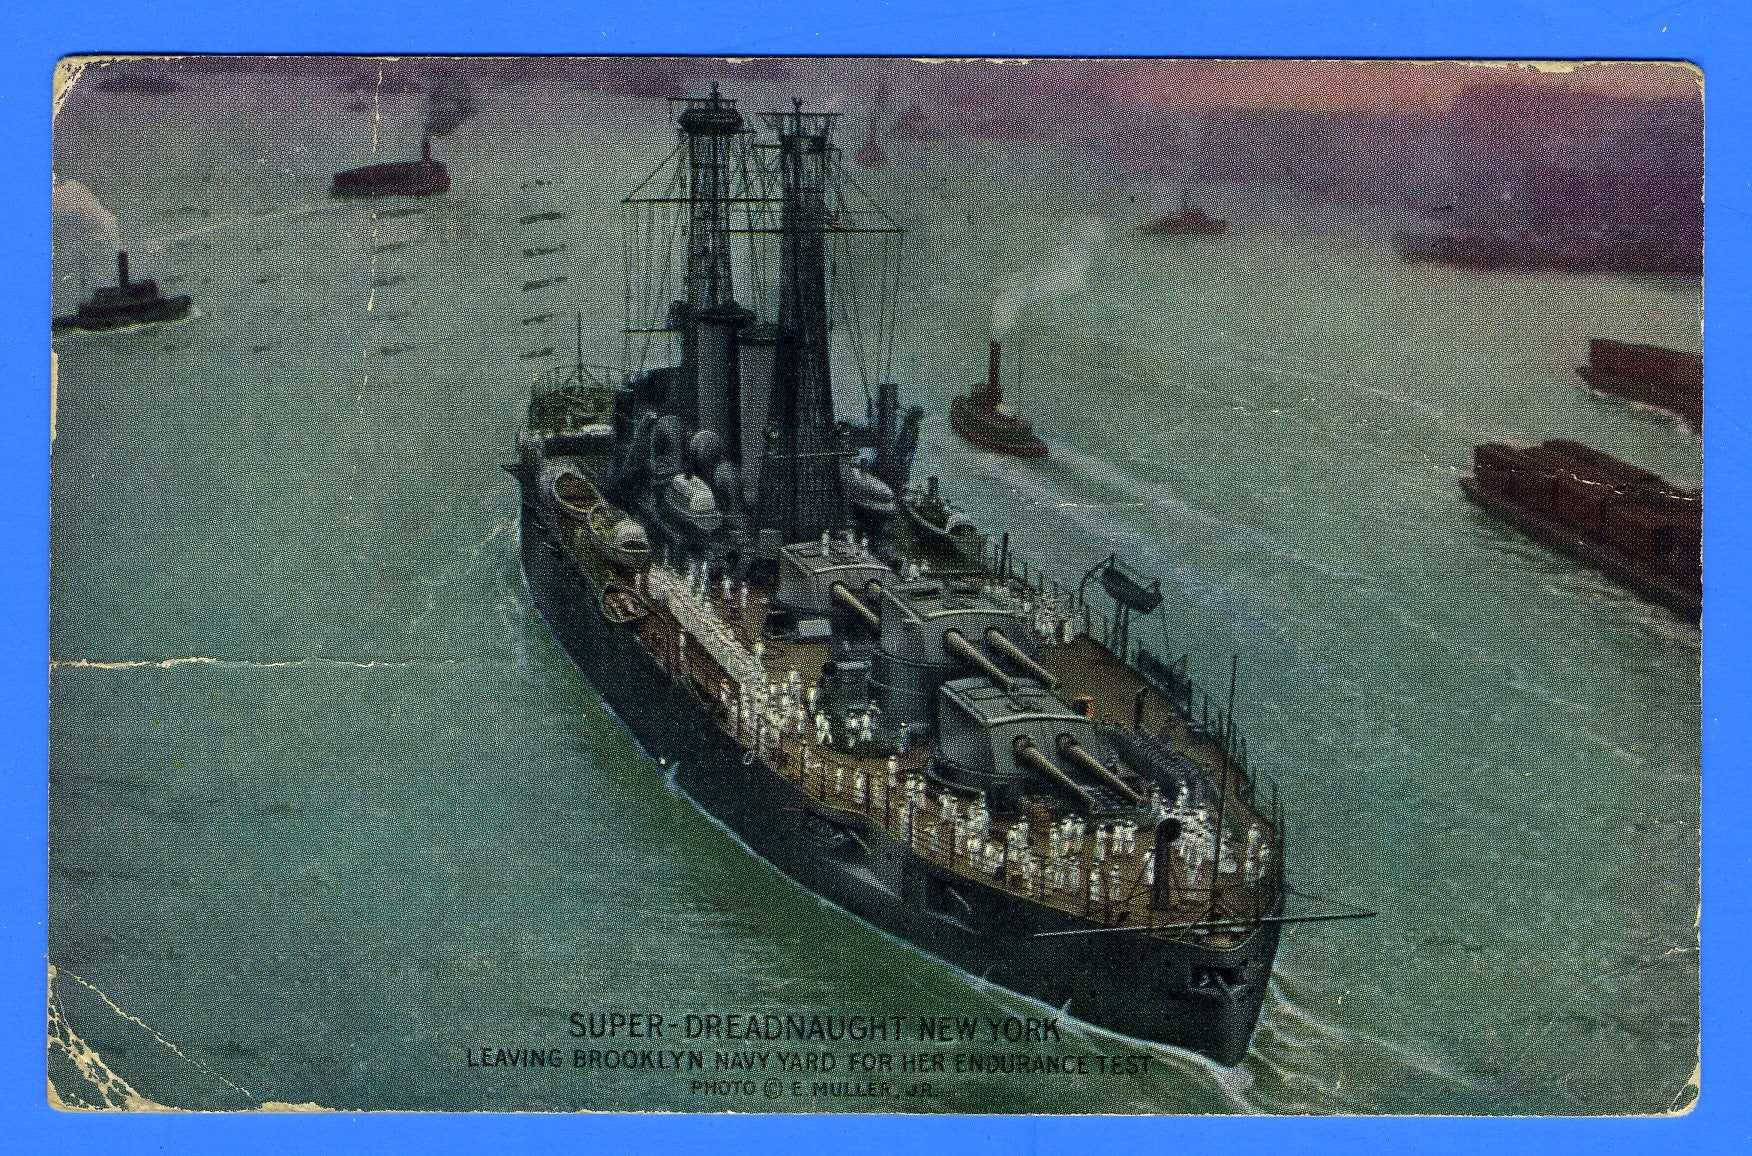 "Battleship ""Super-Dreadnought"" USS New York BB-32 - Postally Used Advertising Postcard by Enrique Muller"